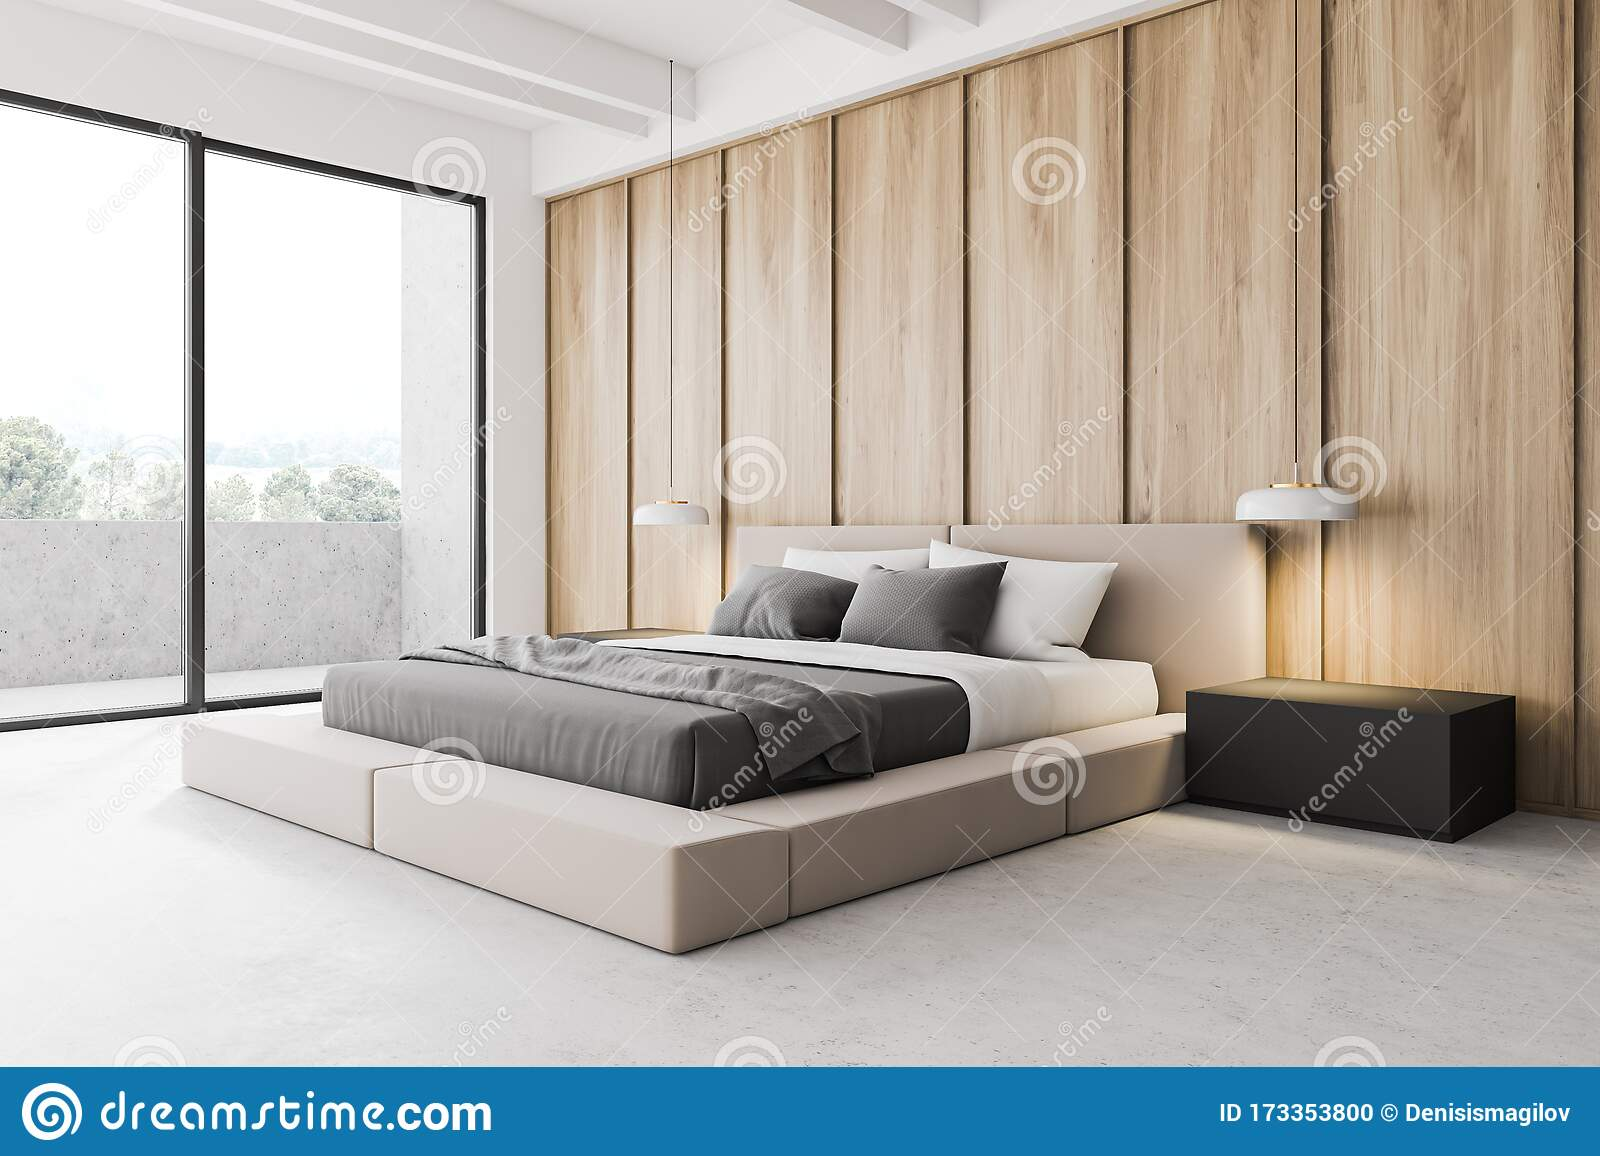 https www dreamstime com modern wooden master bedroom corner luxury balcony white walls concrete floor cozy king size bed two bedside tables lamps image173353800